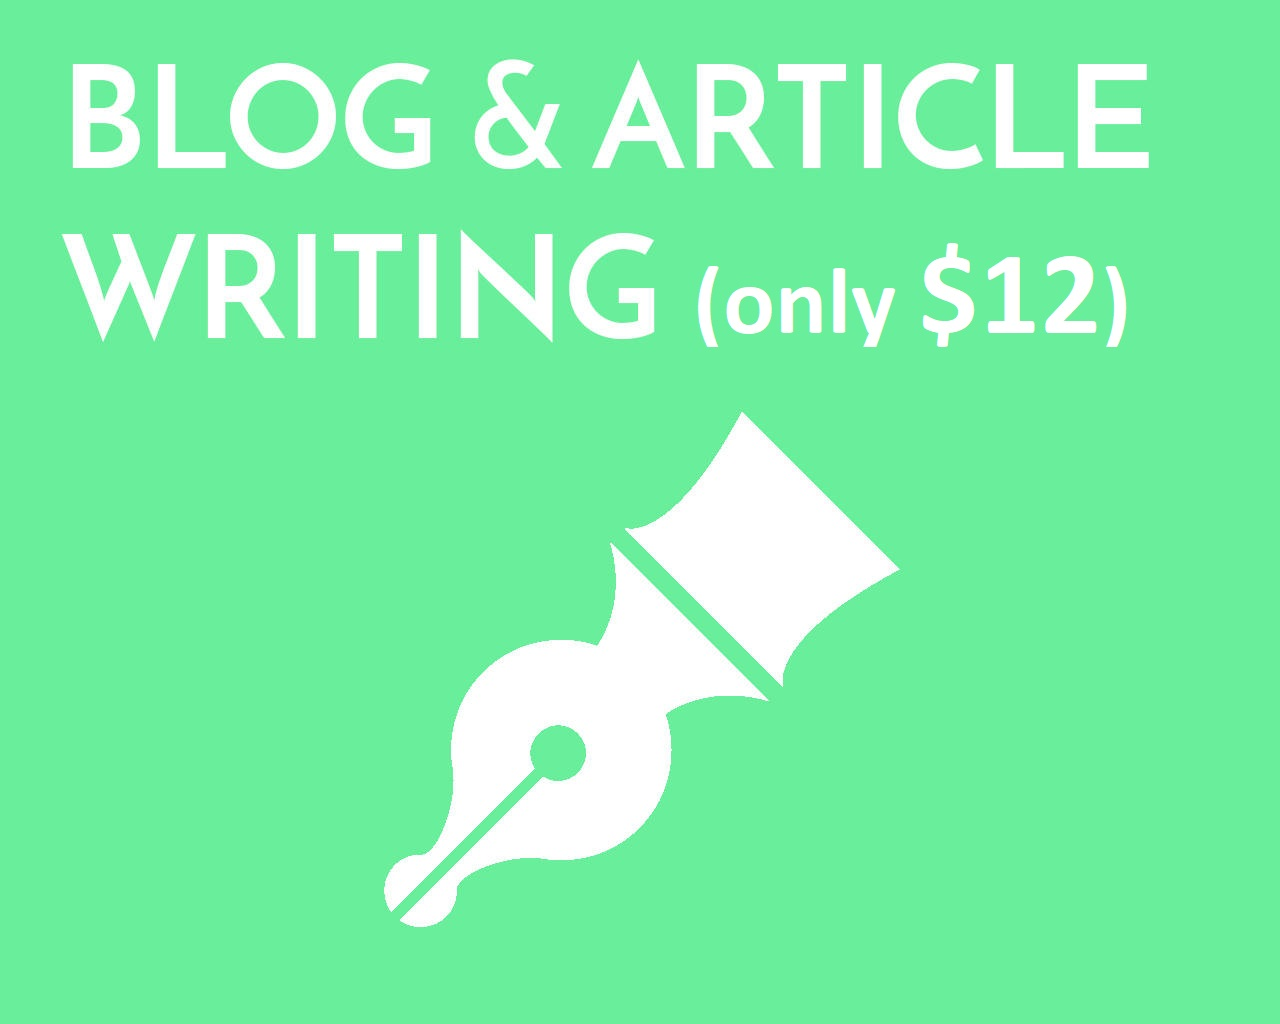 I write original blog articles for any kind of topic